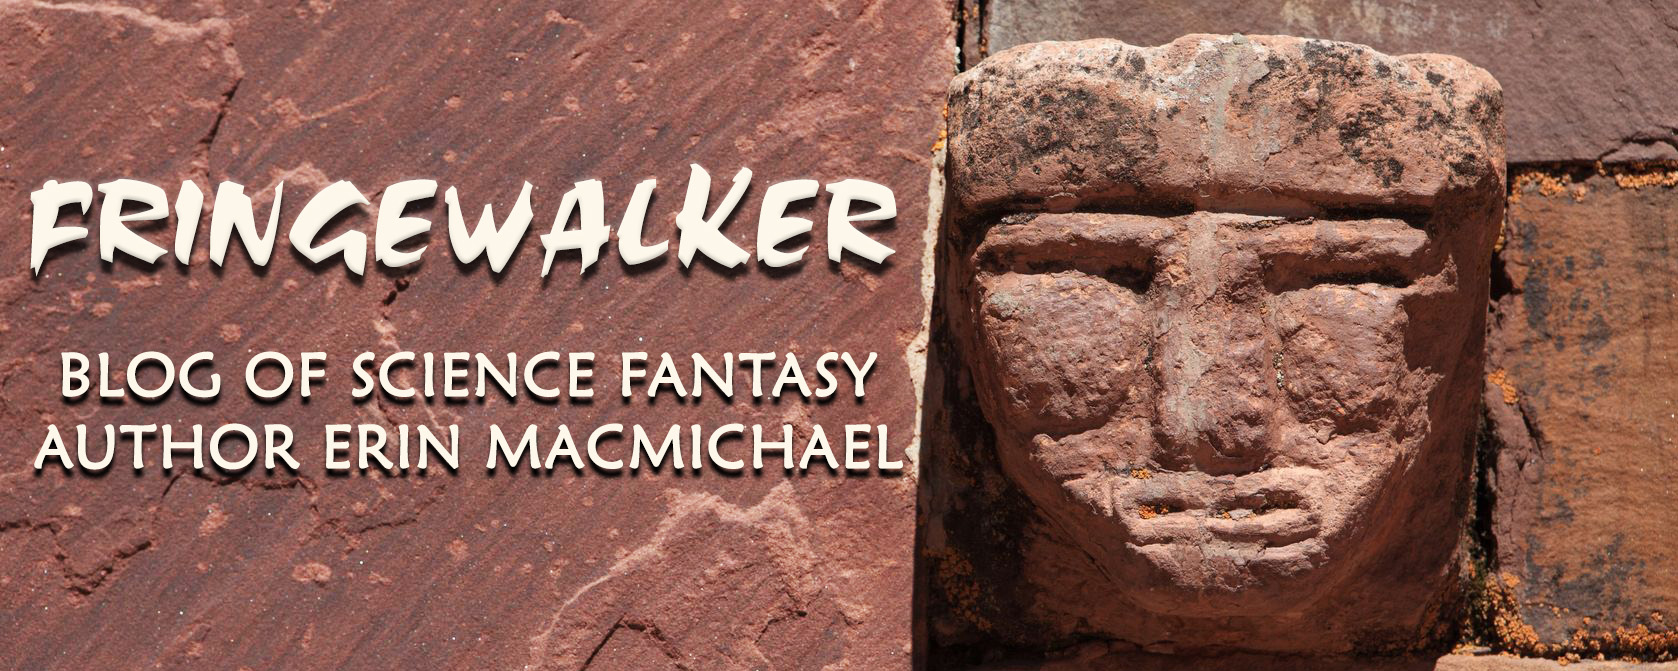 Fringewalker: Blog of Science Fantasy Author Erin MacMichael